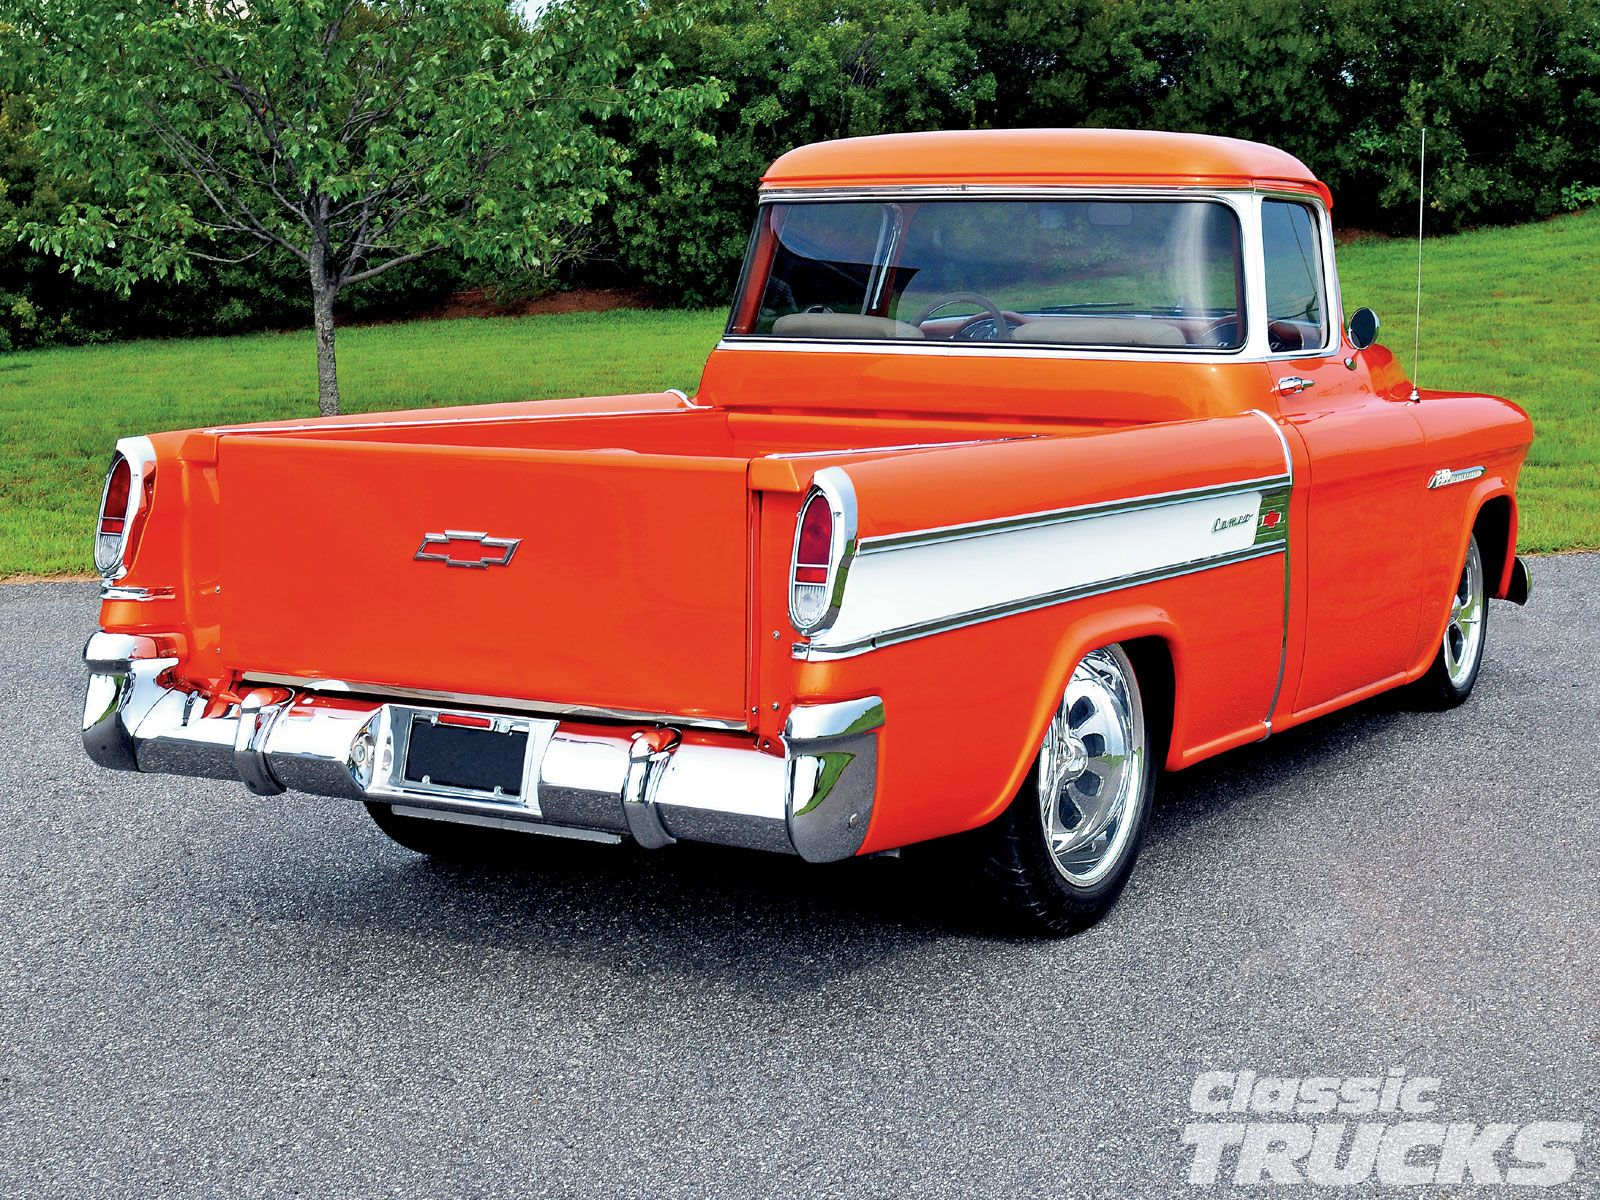 1955 Chevy Truck 1955 Chevrolet Cameo Rear Classic Chevy Trucks Classic Trucks Chevy Pickups